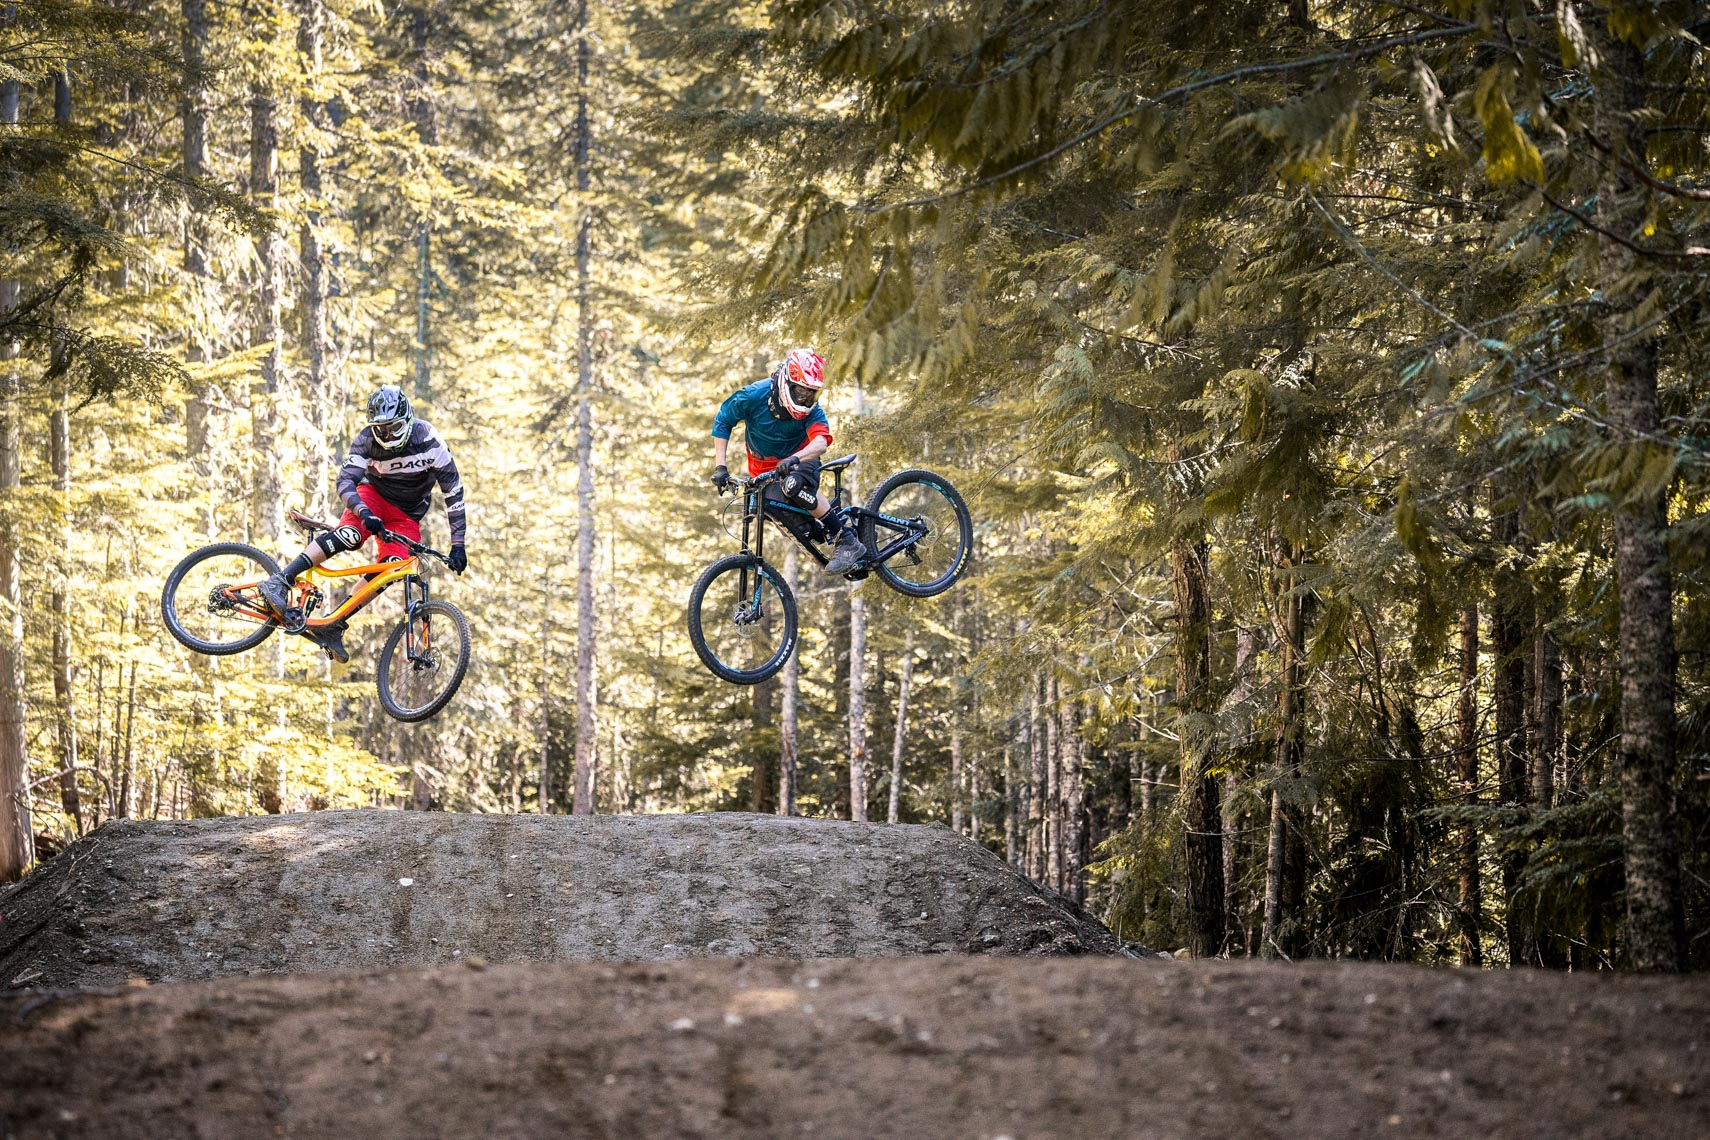 Two mountain bike athletes in the air in the Whistler bike park